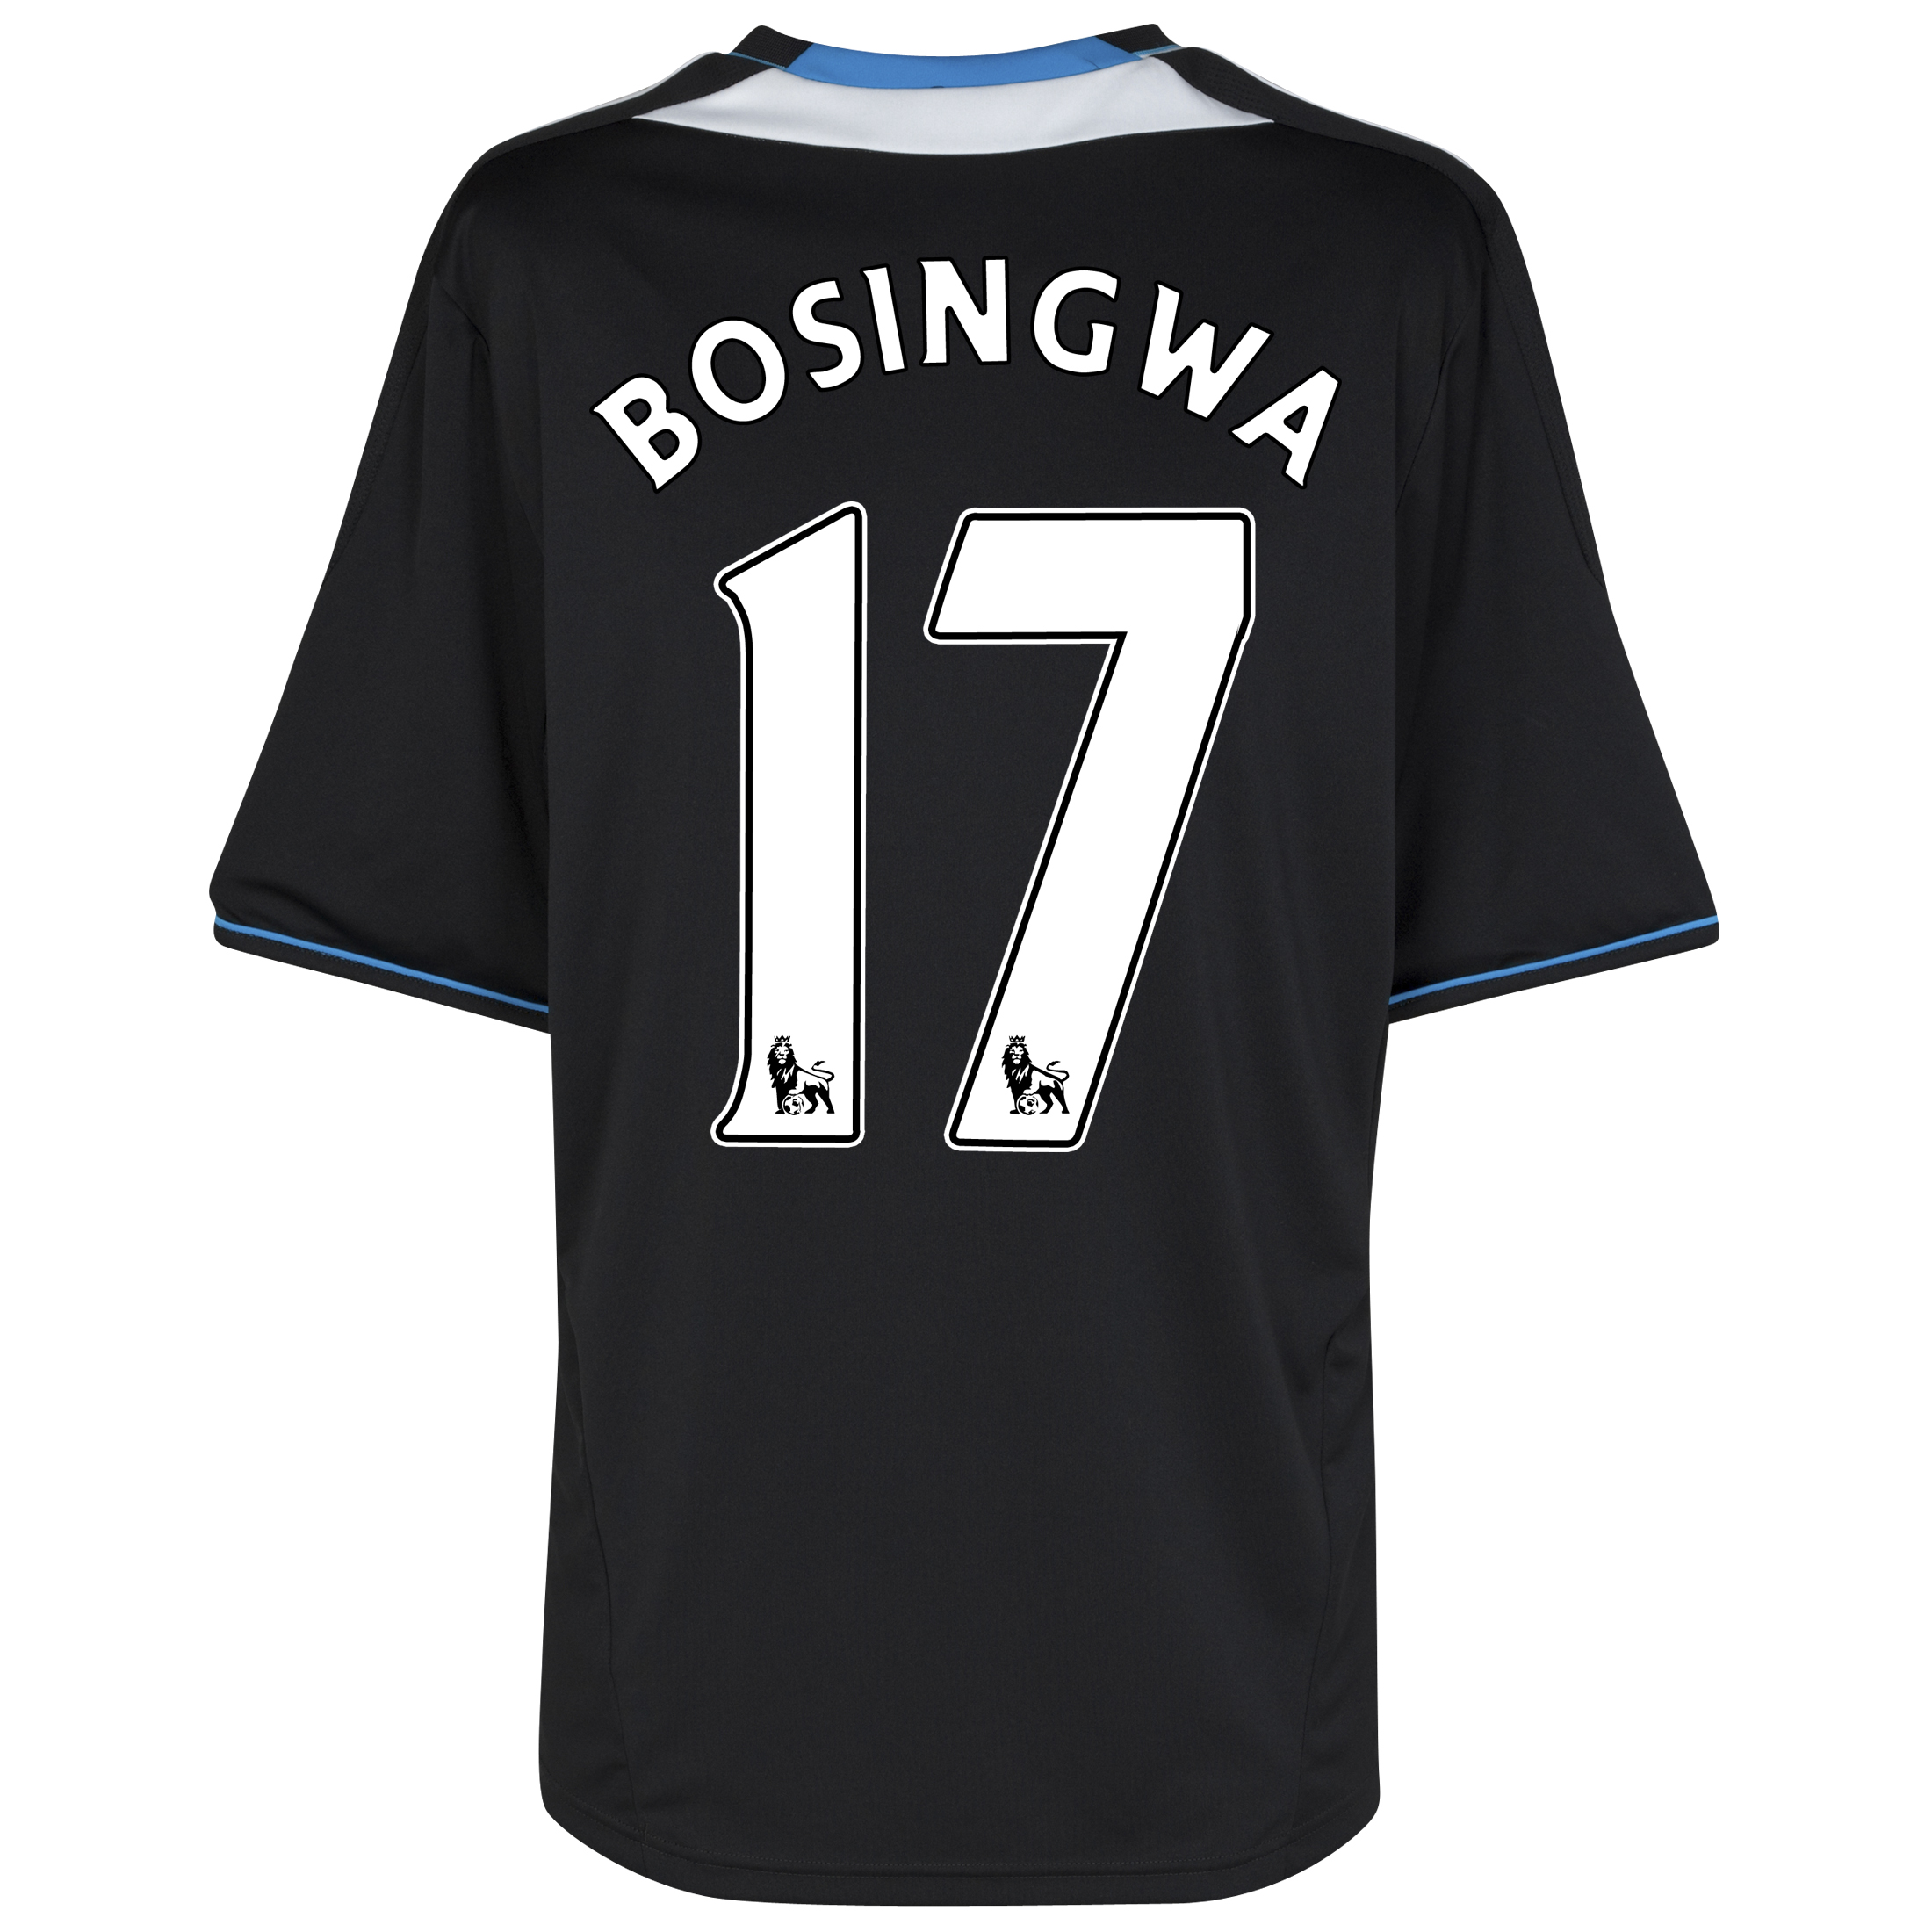 Chelsea Away Shirt 2011/12 with Bosingwa 17 printing